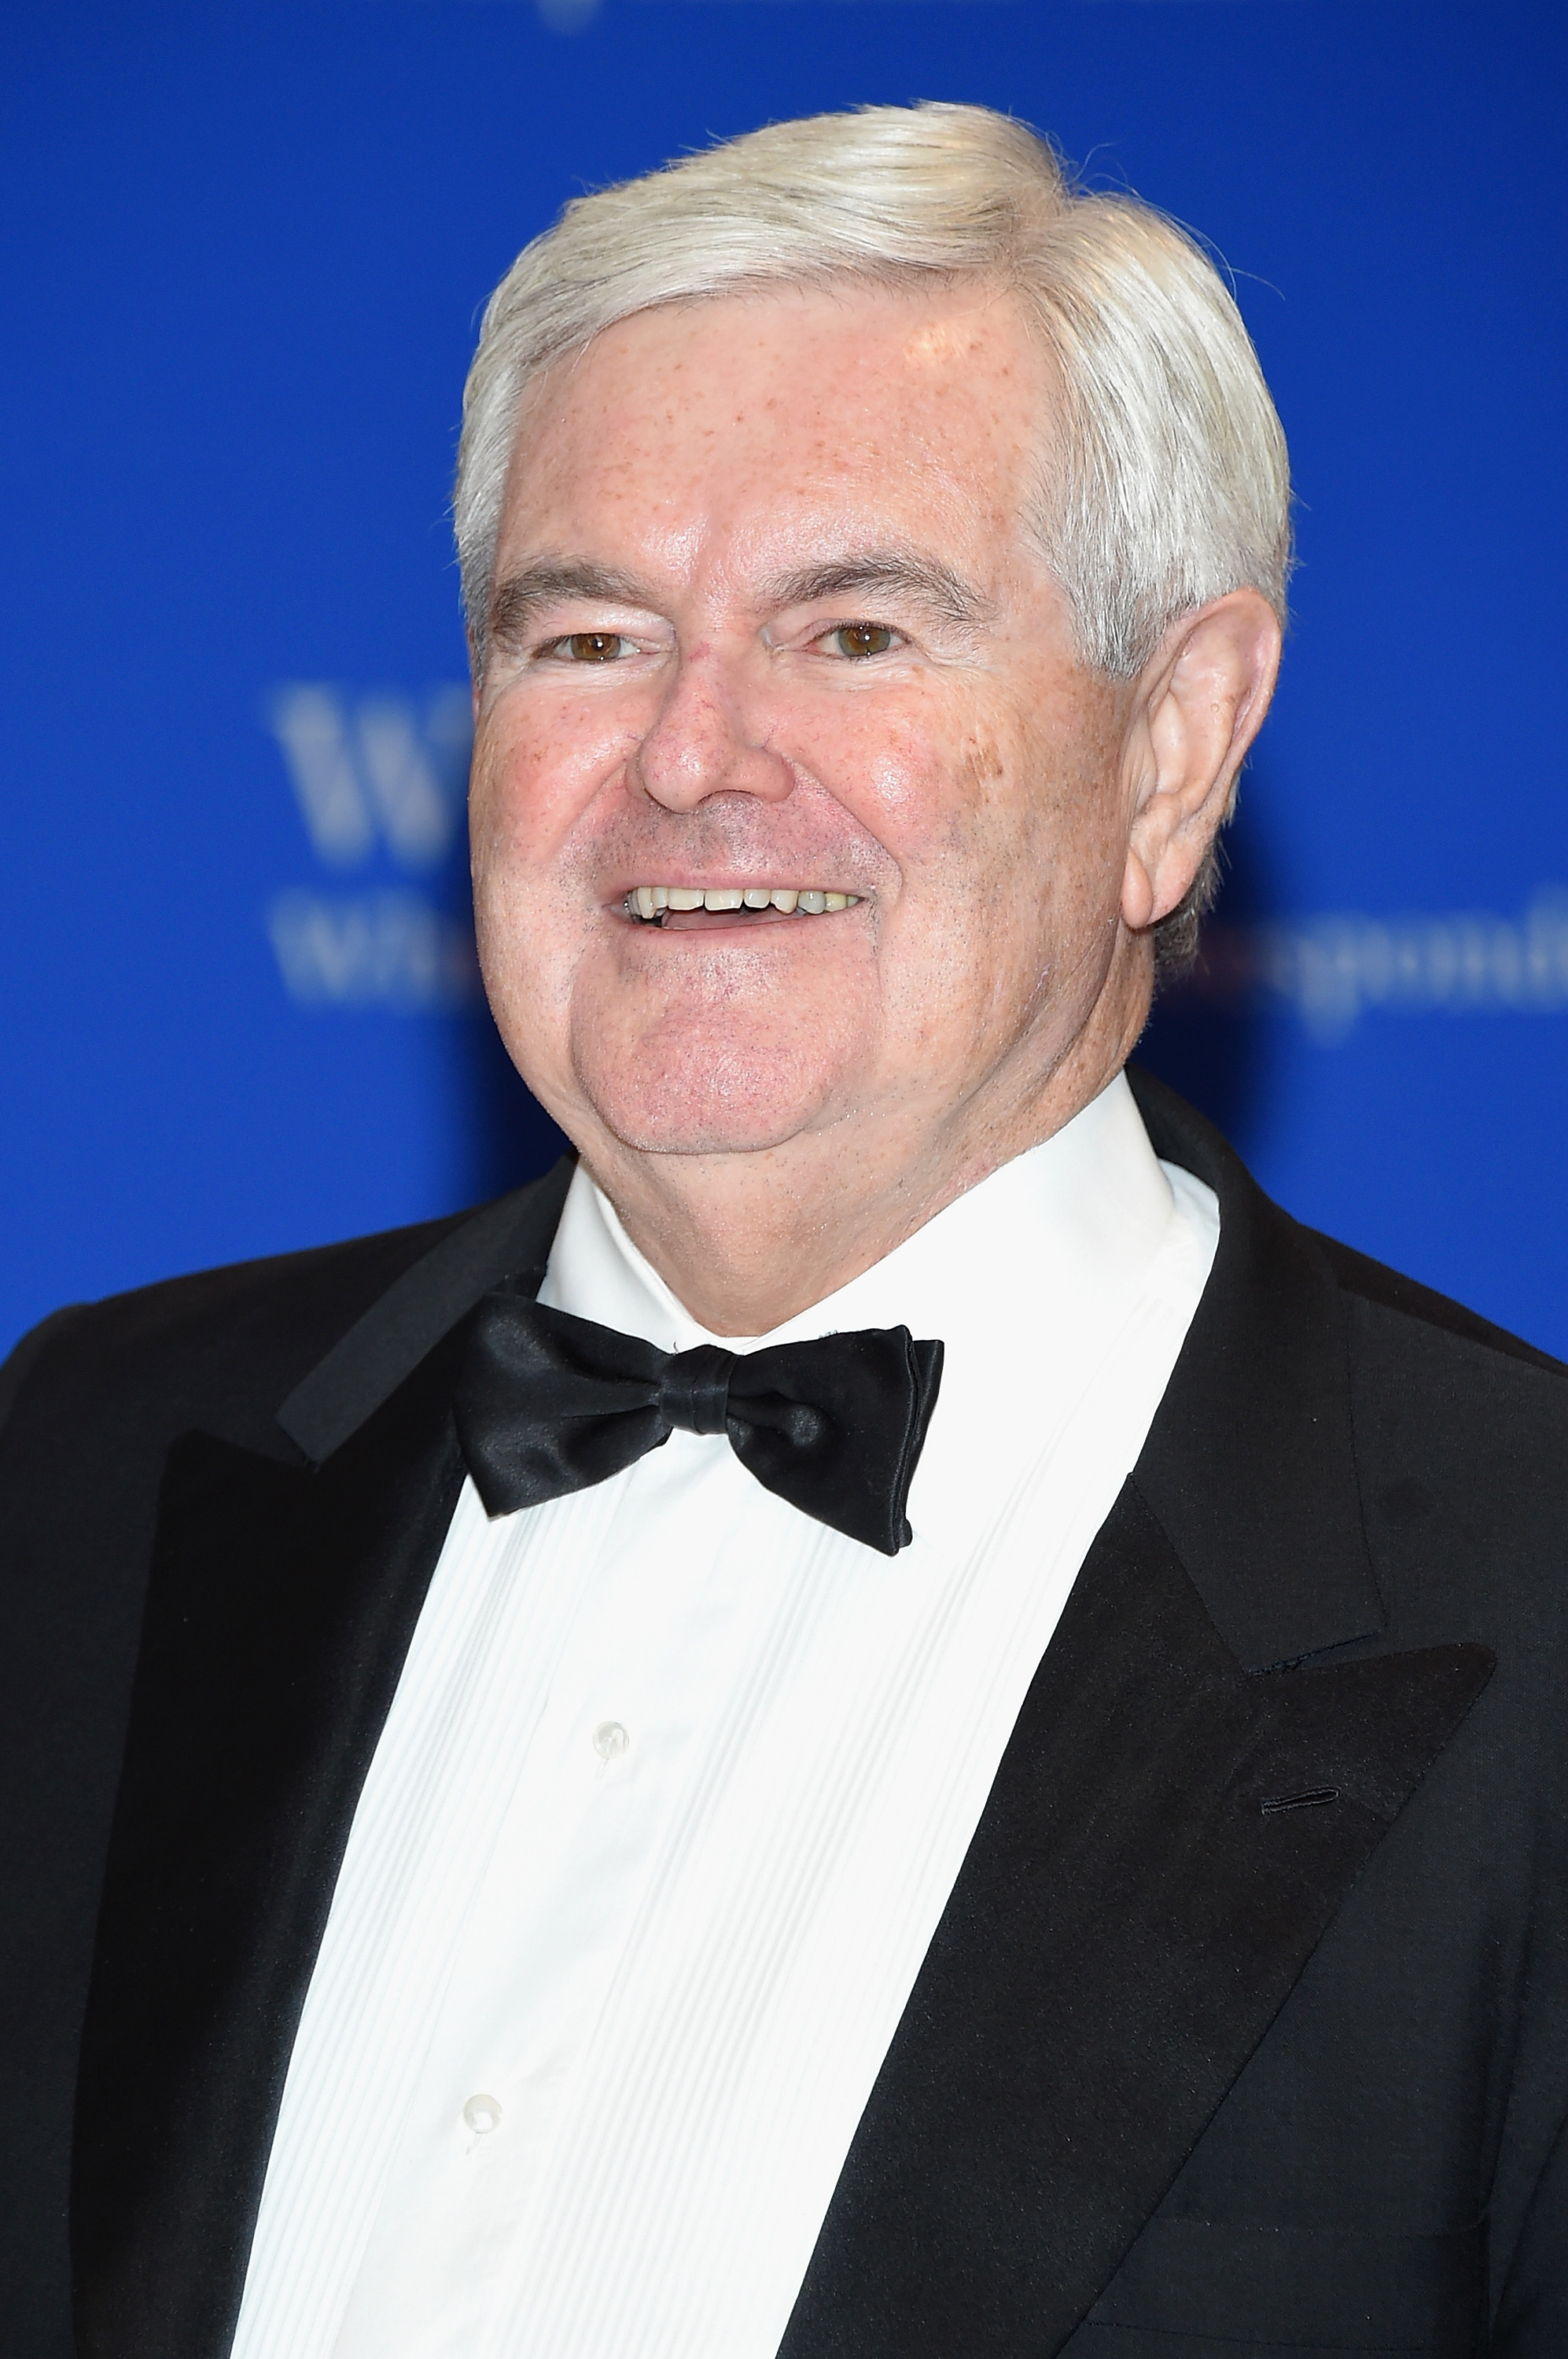 Newt Gingrich attends the 101st Annual White House Correspondents' Association Dinner at the Washington Hilton on April 25, 2015 in Washington, DC.